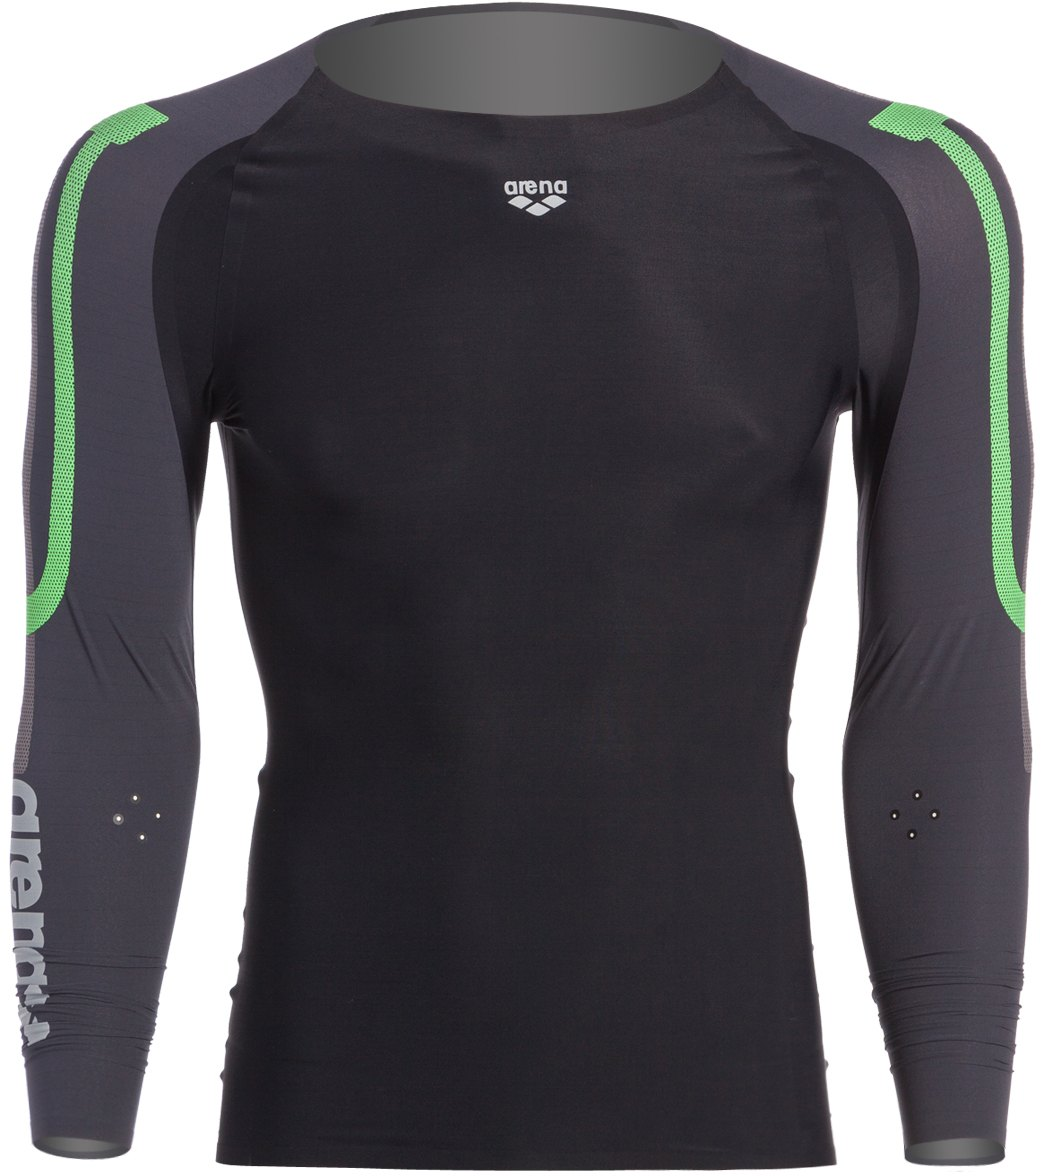 b5a11c5dd Arena Men's Compression Long Sleeve at SwimOutlet.com - Free Shipping